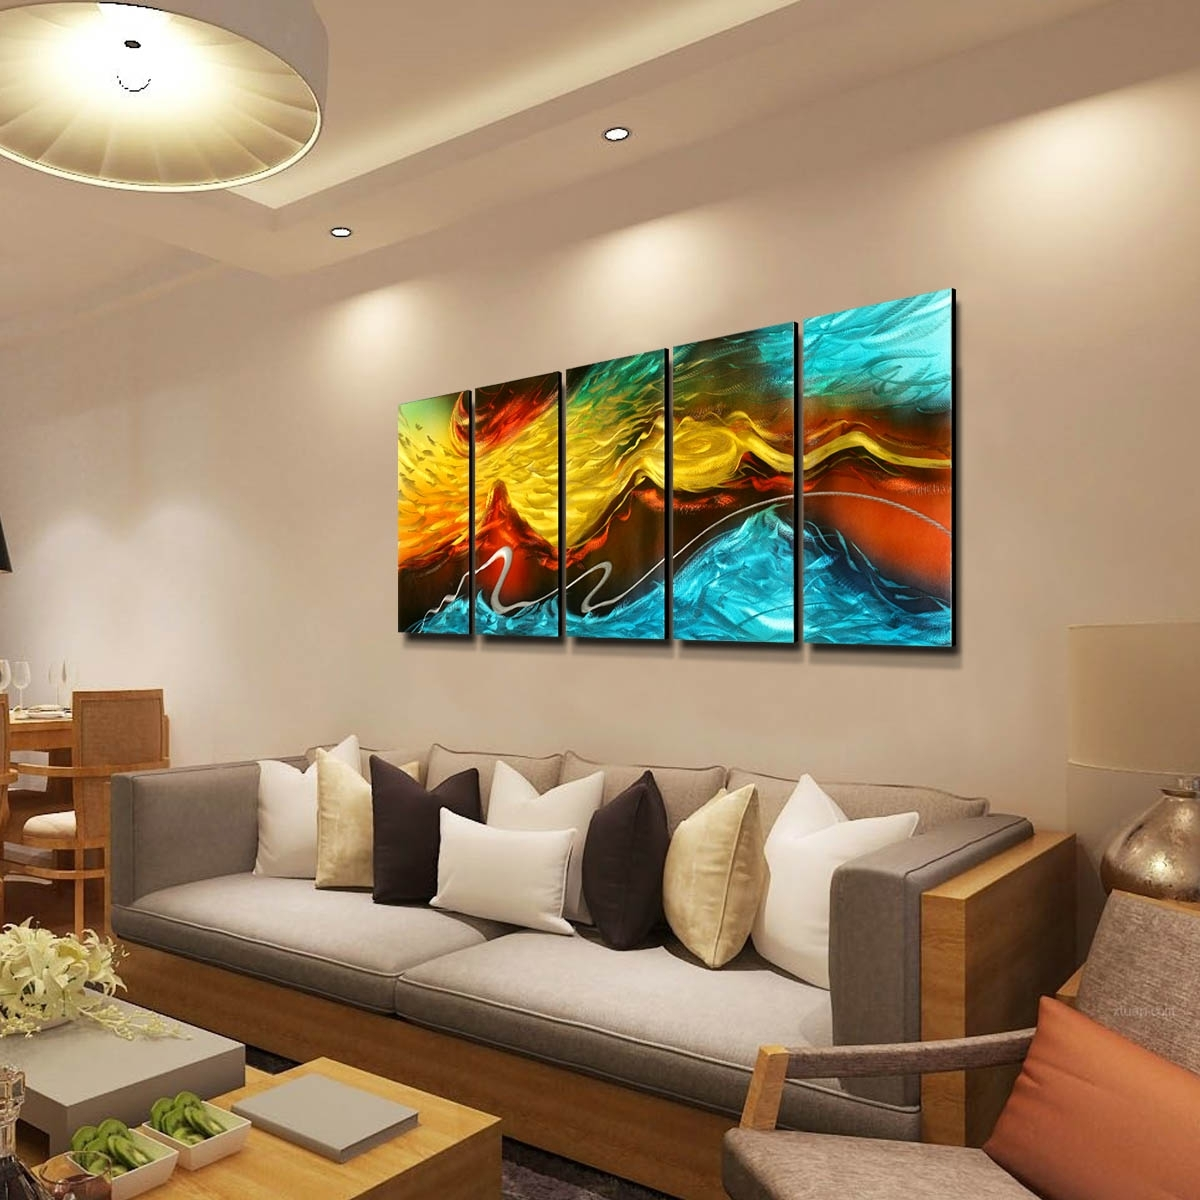 Best And Cheap Wall Hangings Tooarts Fire And Ice Modern Painting Intended For Most Current Abstract Wall Art For Living Room (View 7 of 20)